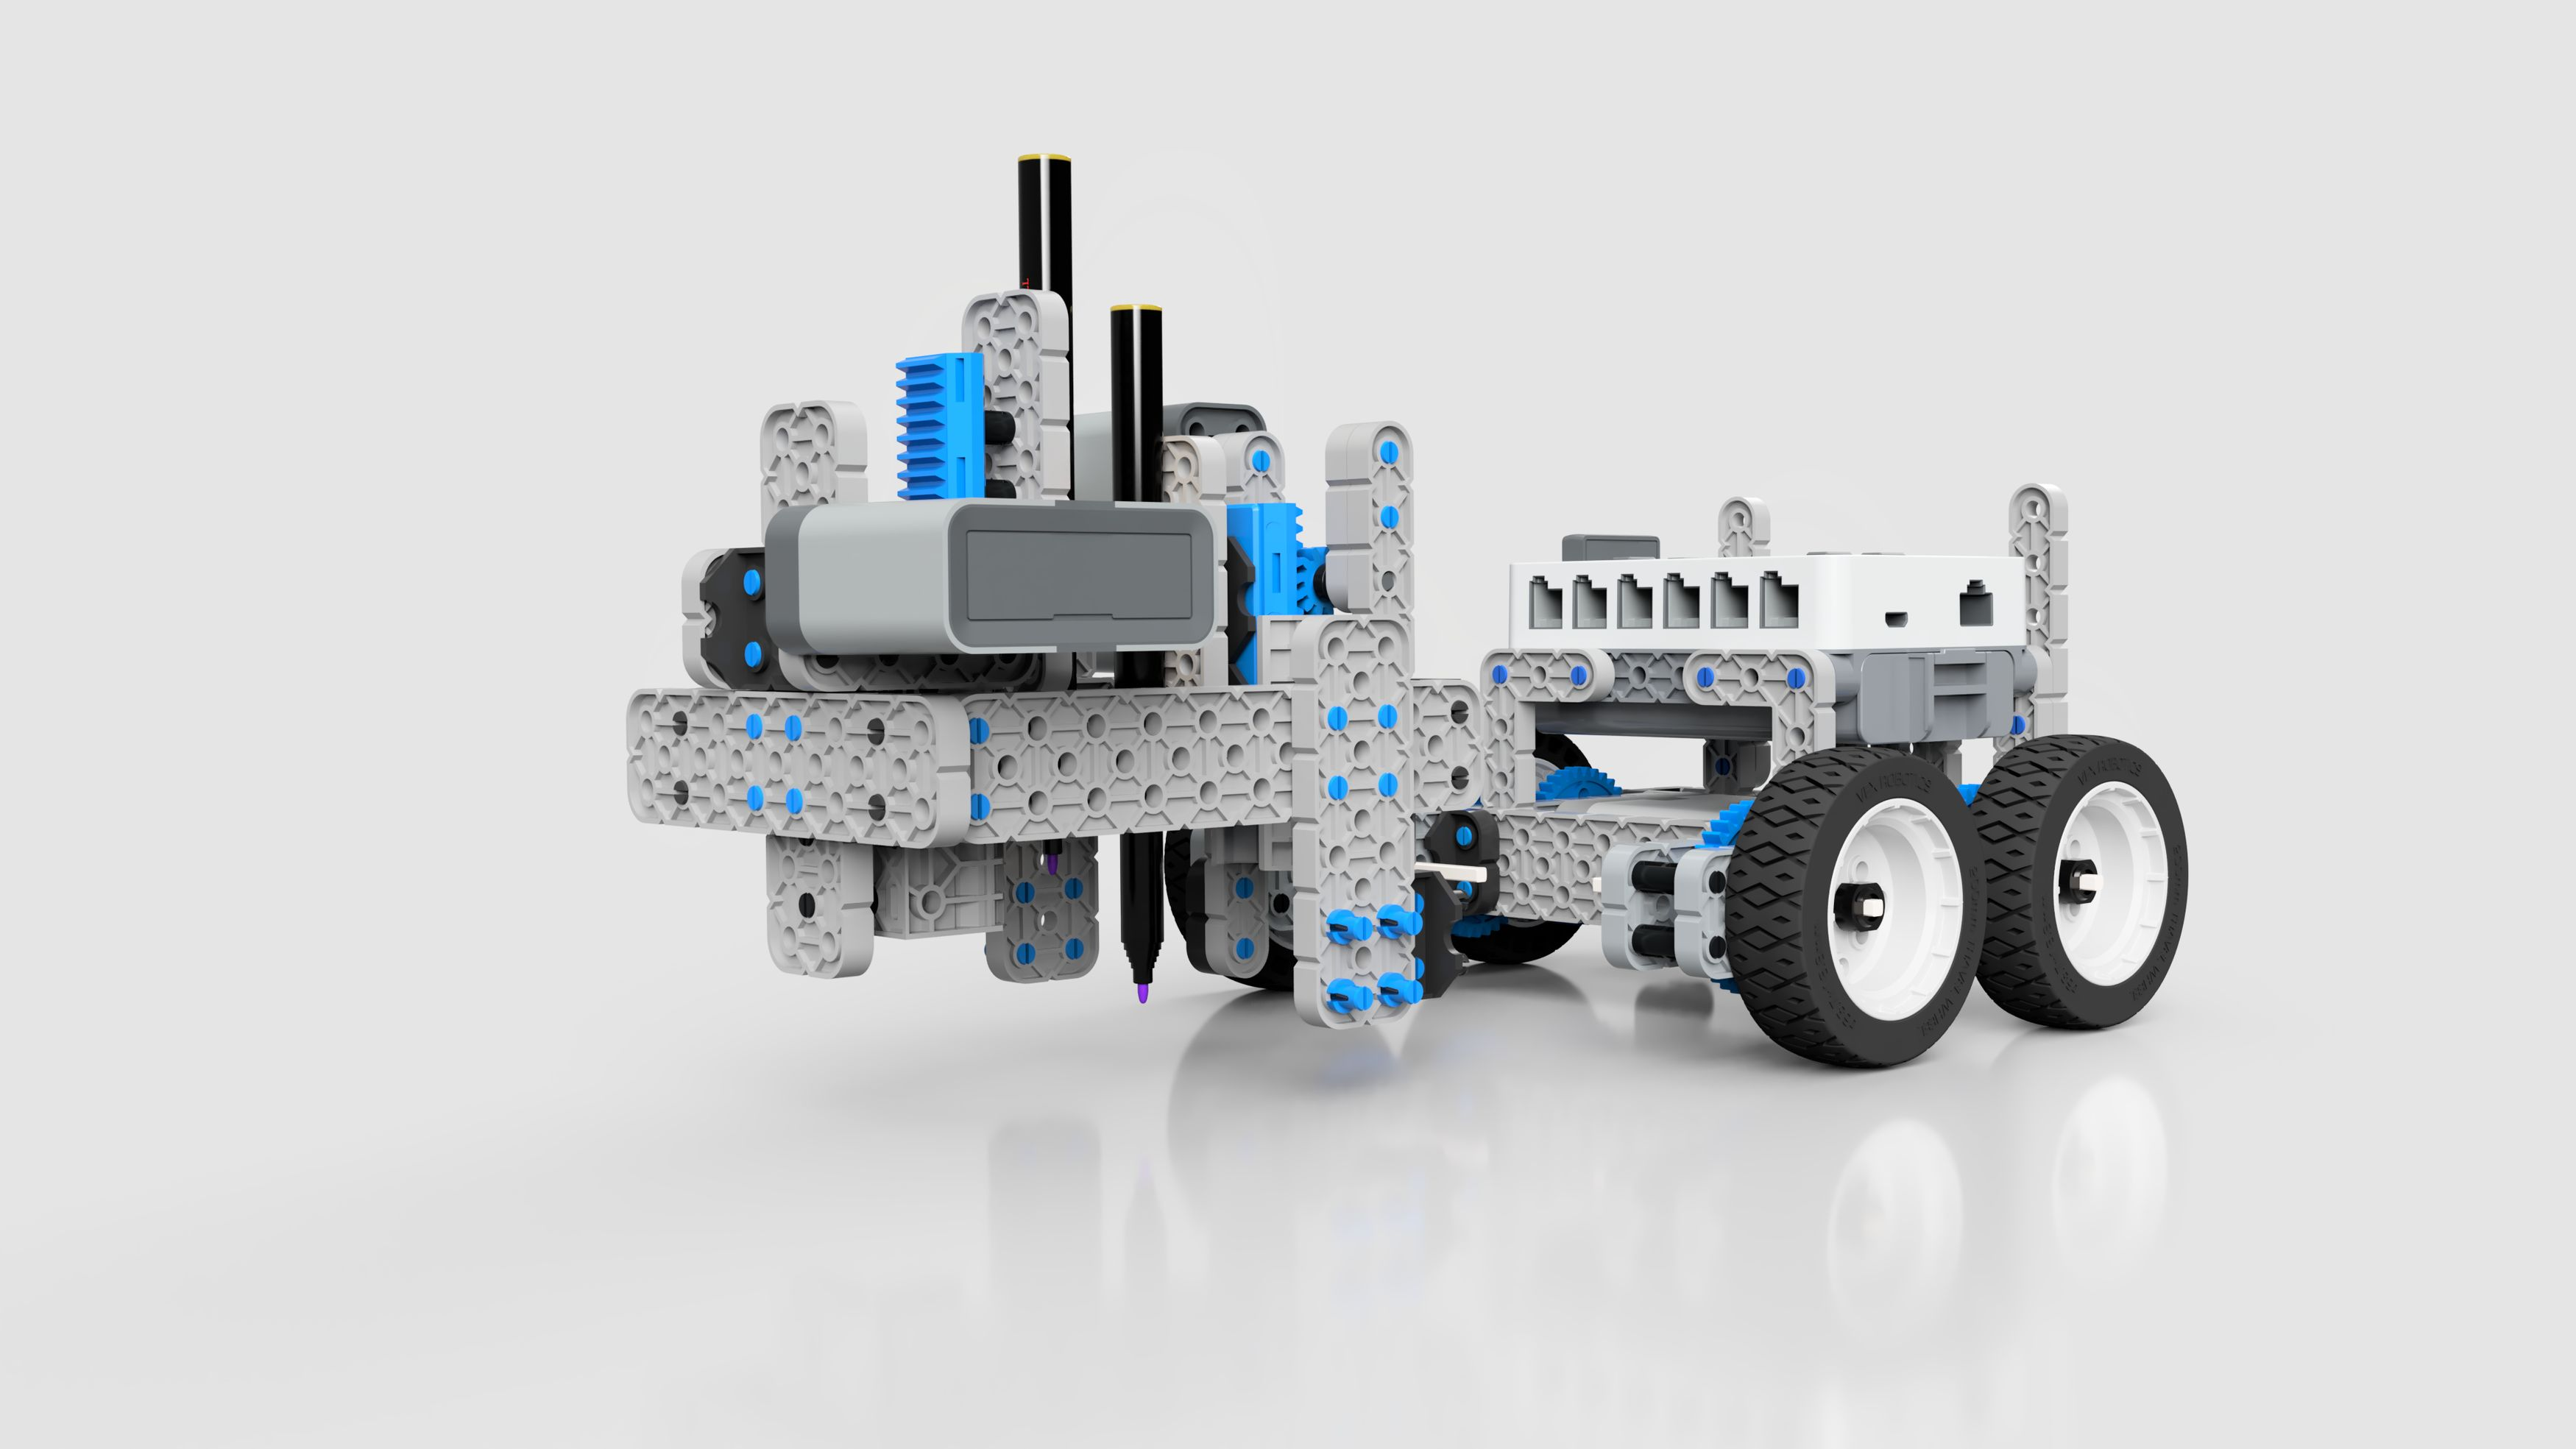 Vex-iq-robot-caneta-2020-may-24-04-58-23pm-000-customizedview6145499064-png-3500-3500